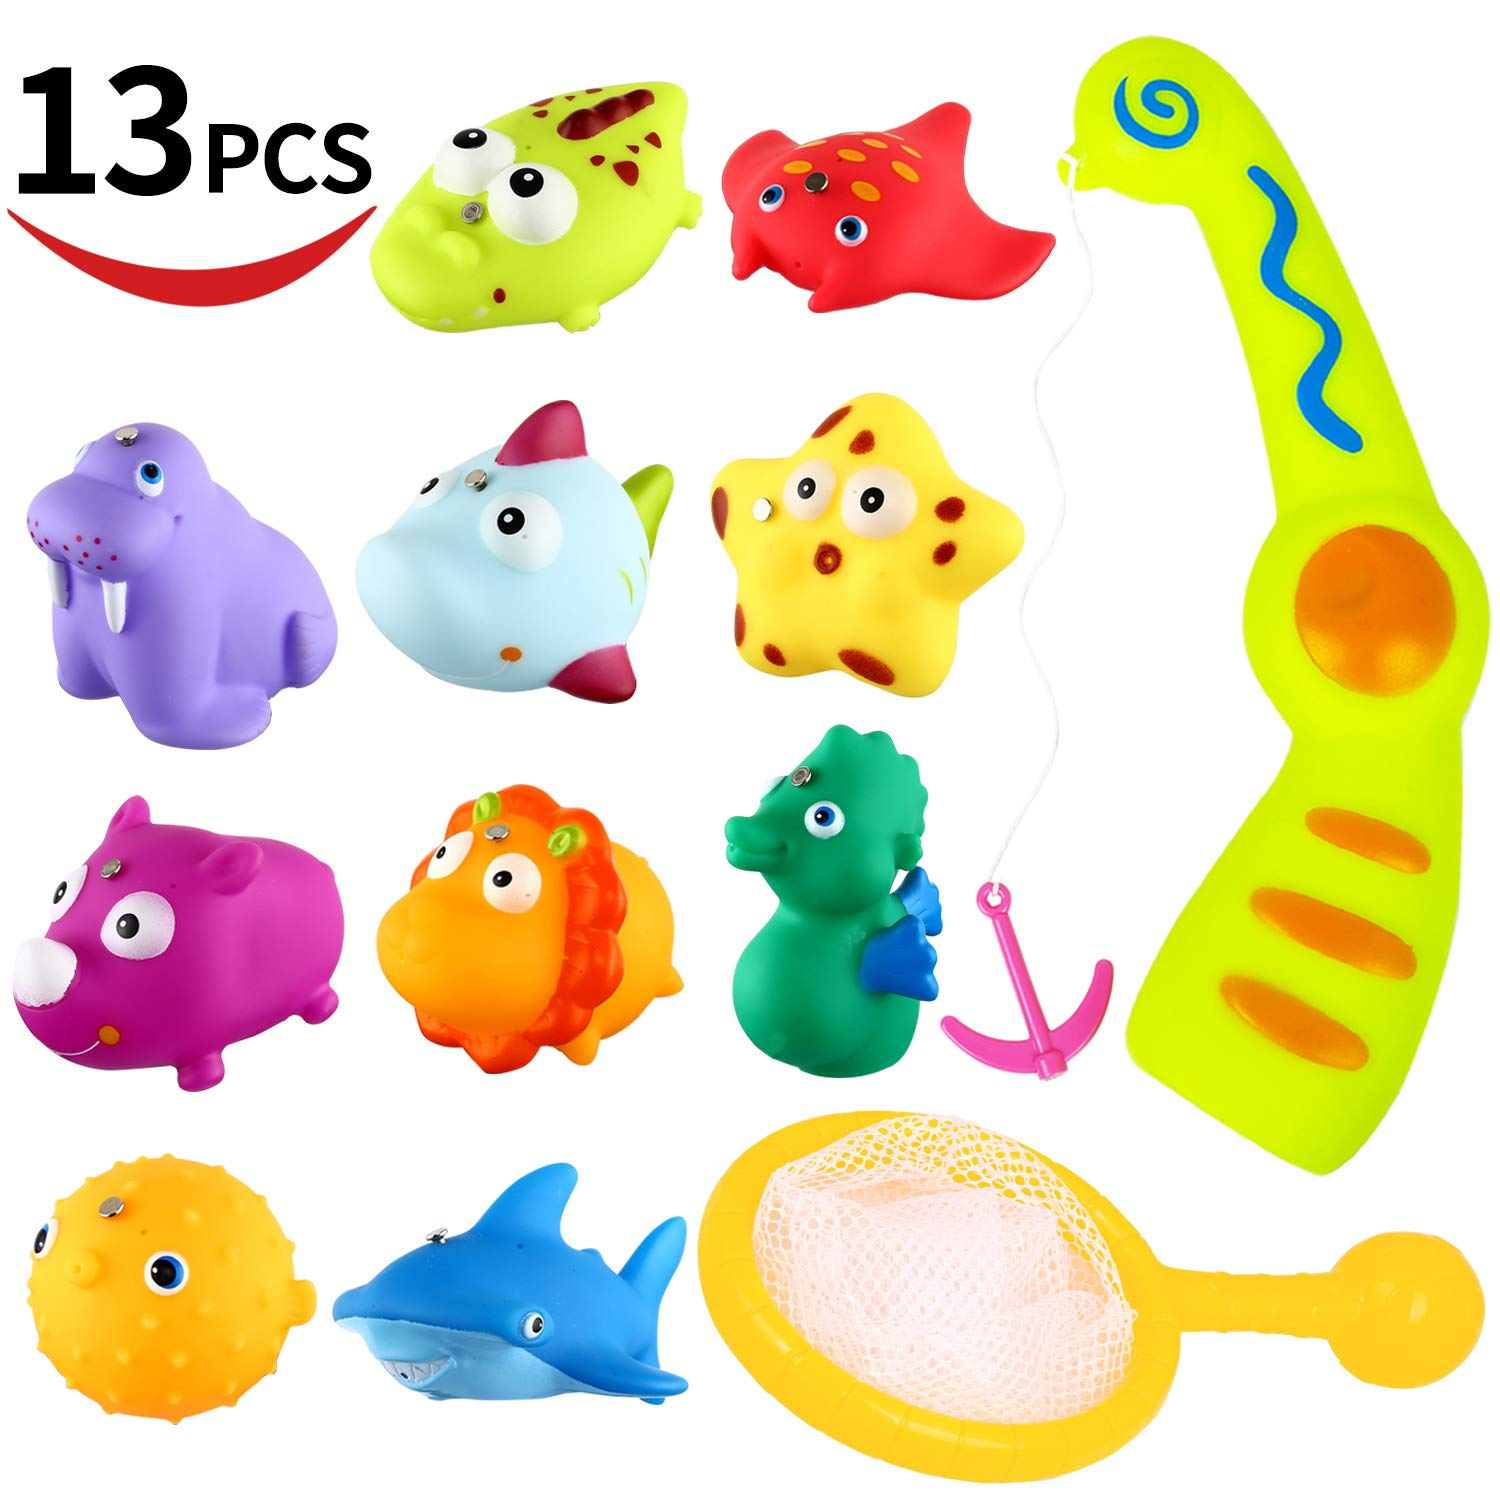 Bath Toy,13 Pcs Magnetic Fishing Game and Floating Squirt Water Toys With Organizer Bag for boys girls, Education Toy for Children, Toddlers, Kids Bathroom Bathtub Bathtime Swimming Pool Party Favors